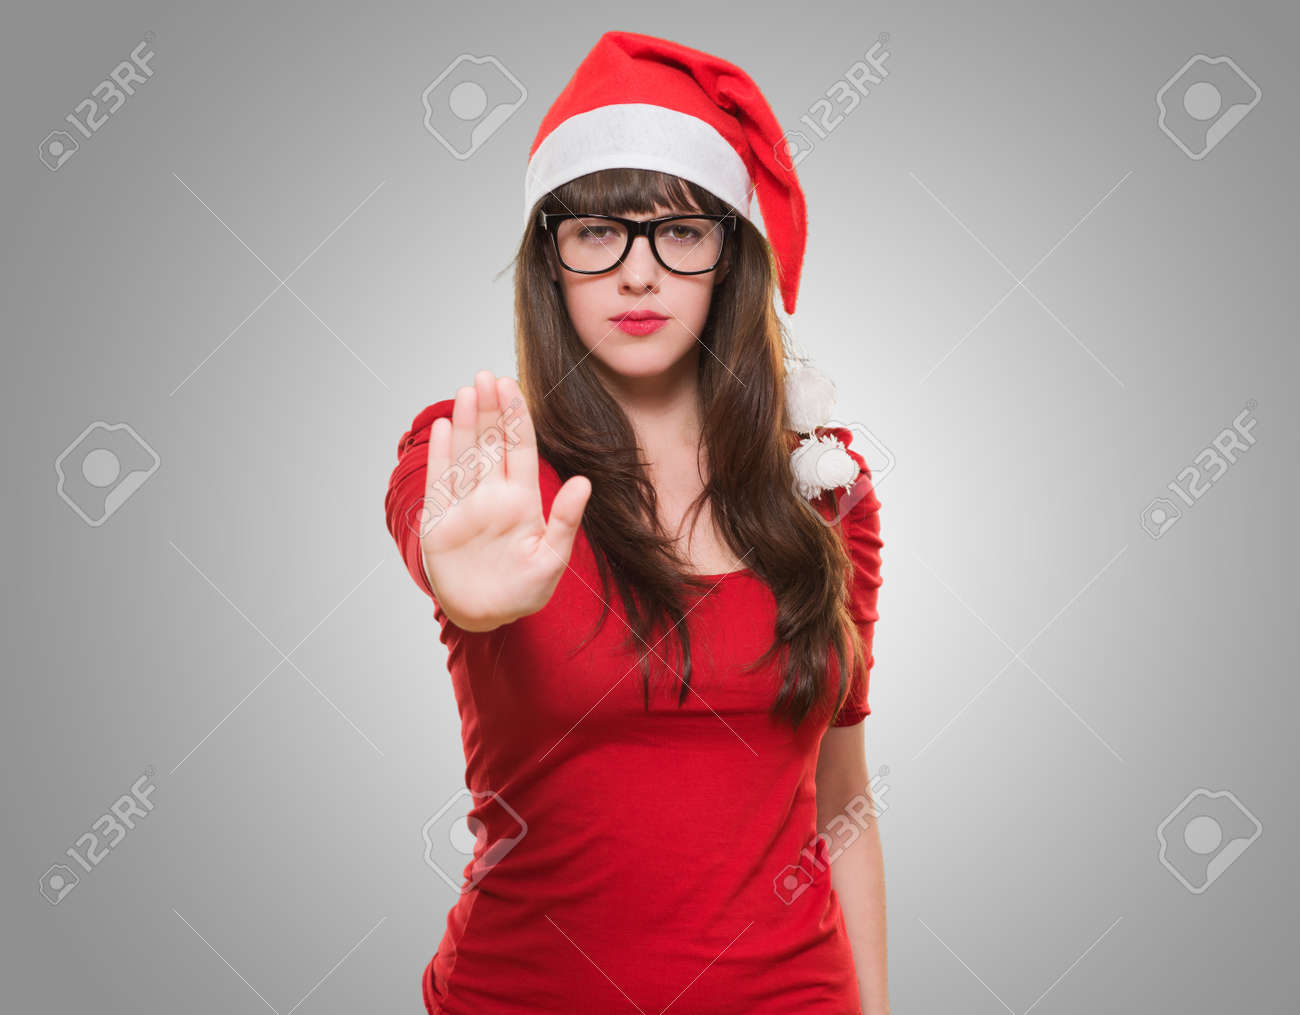 christmas woman doing a stop gesture against a grey background - 16290925